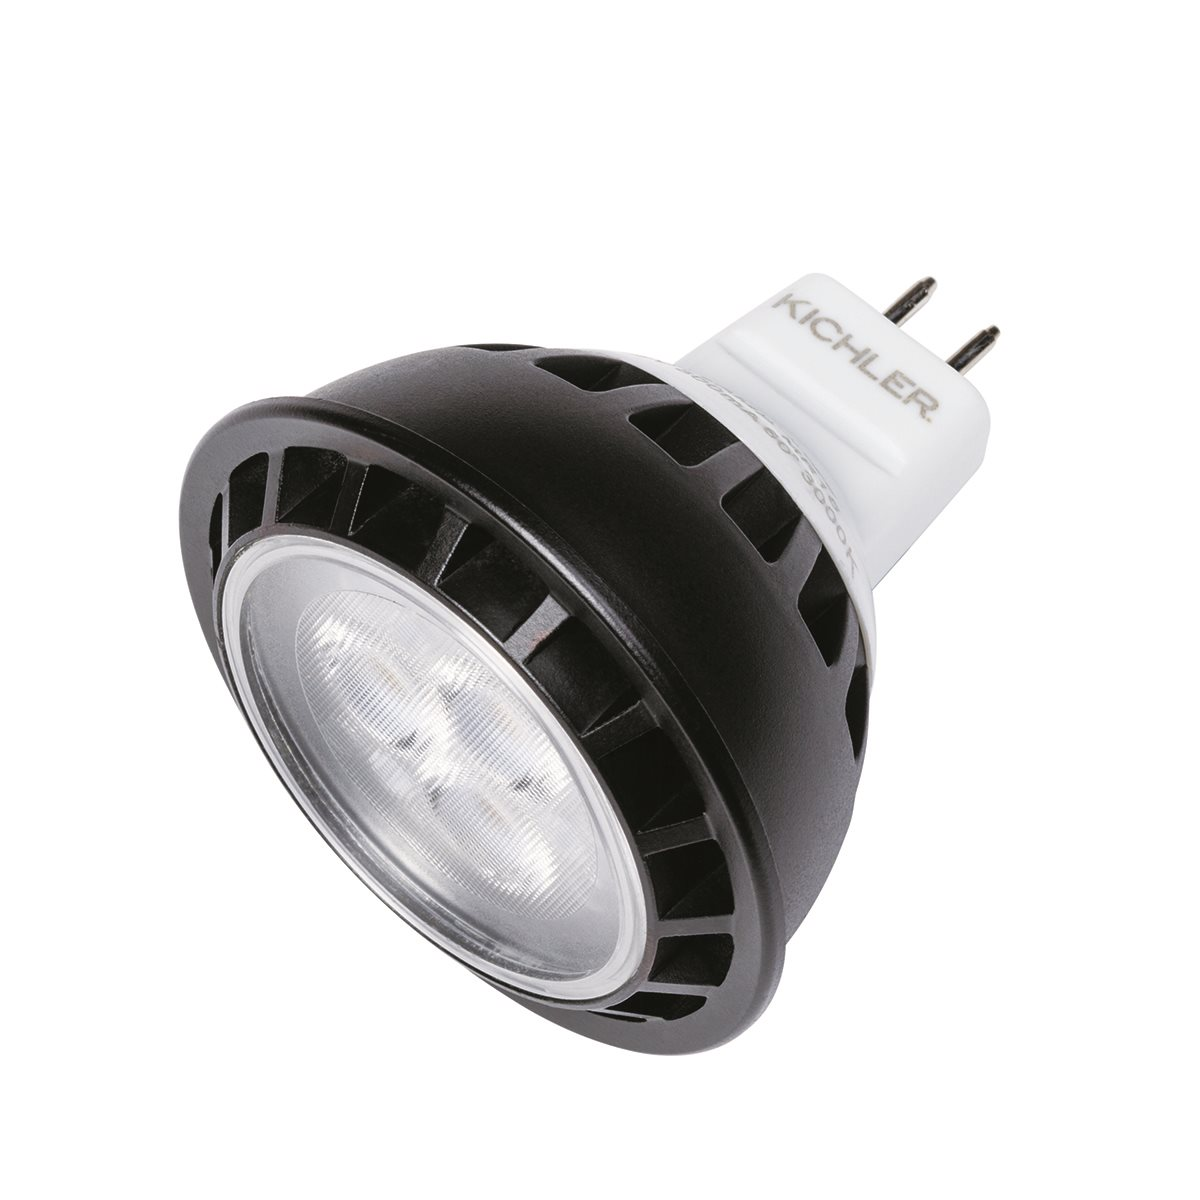 Kichler Lighting Utilitarian Landscape 12V LED Lamp - 18130